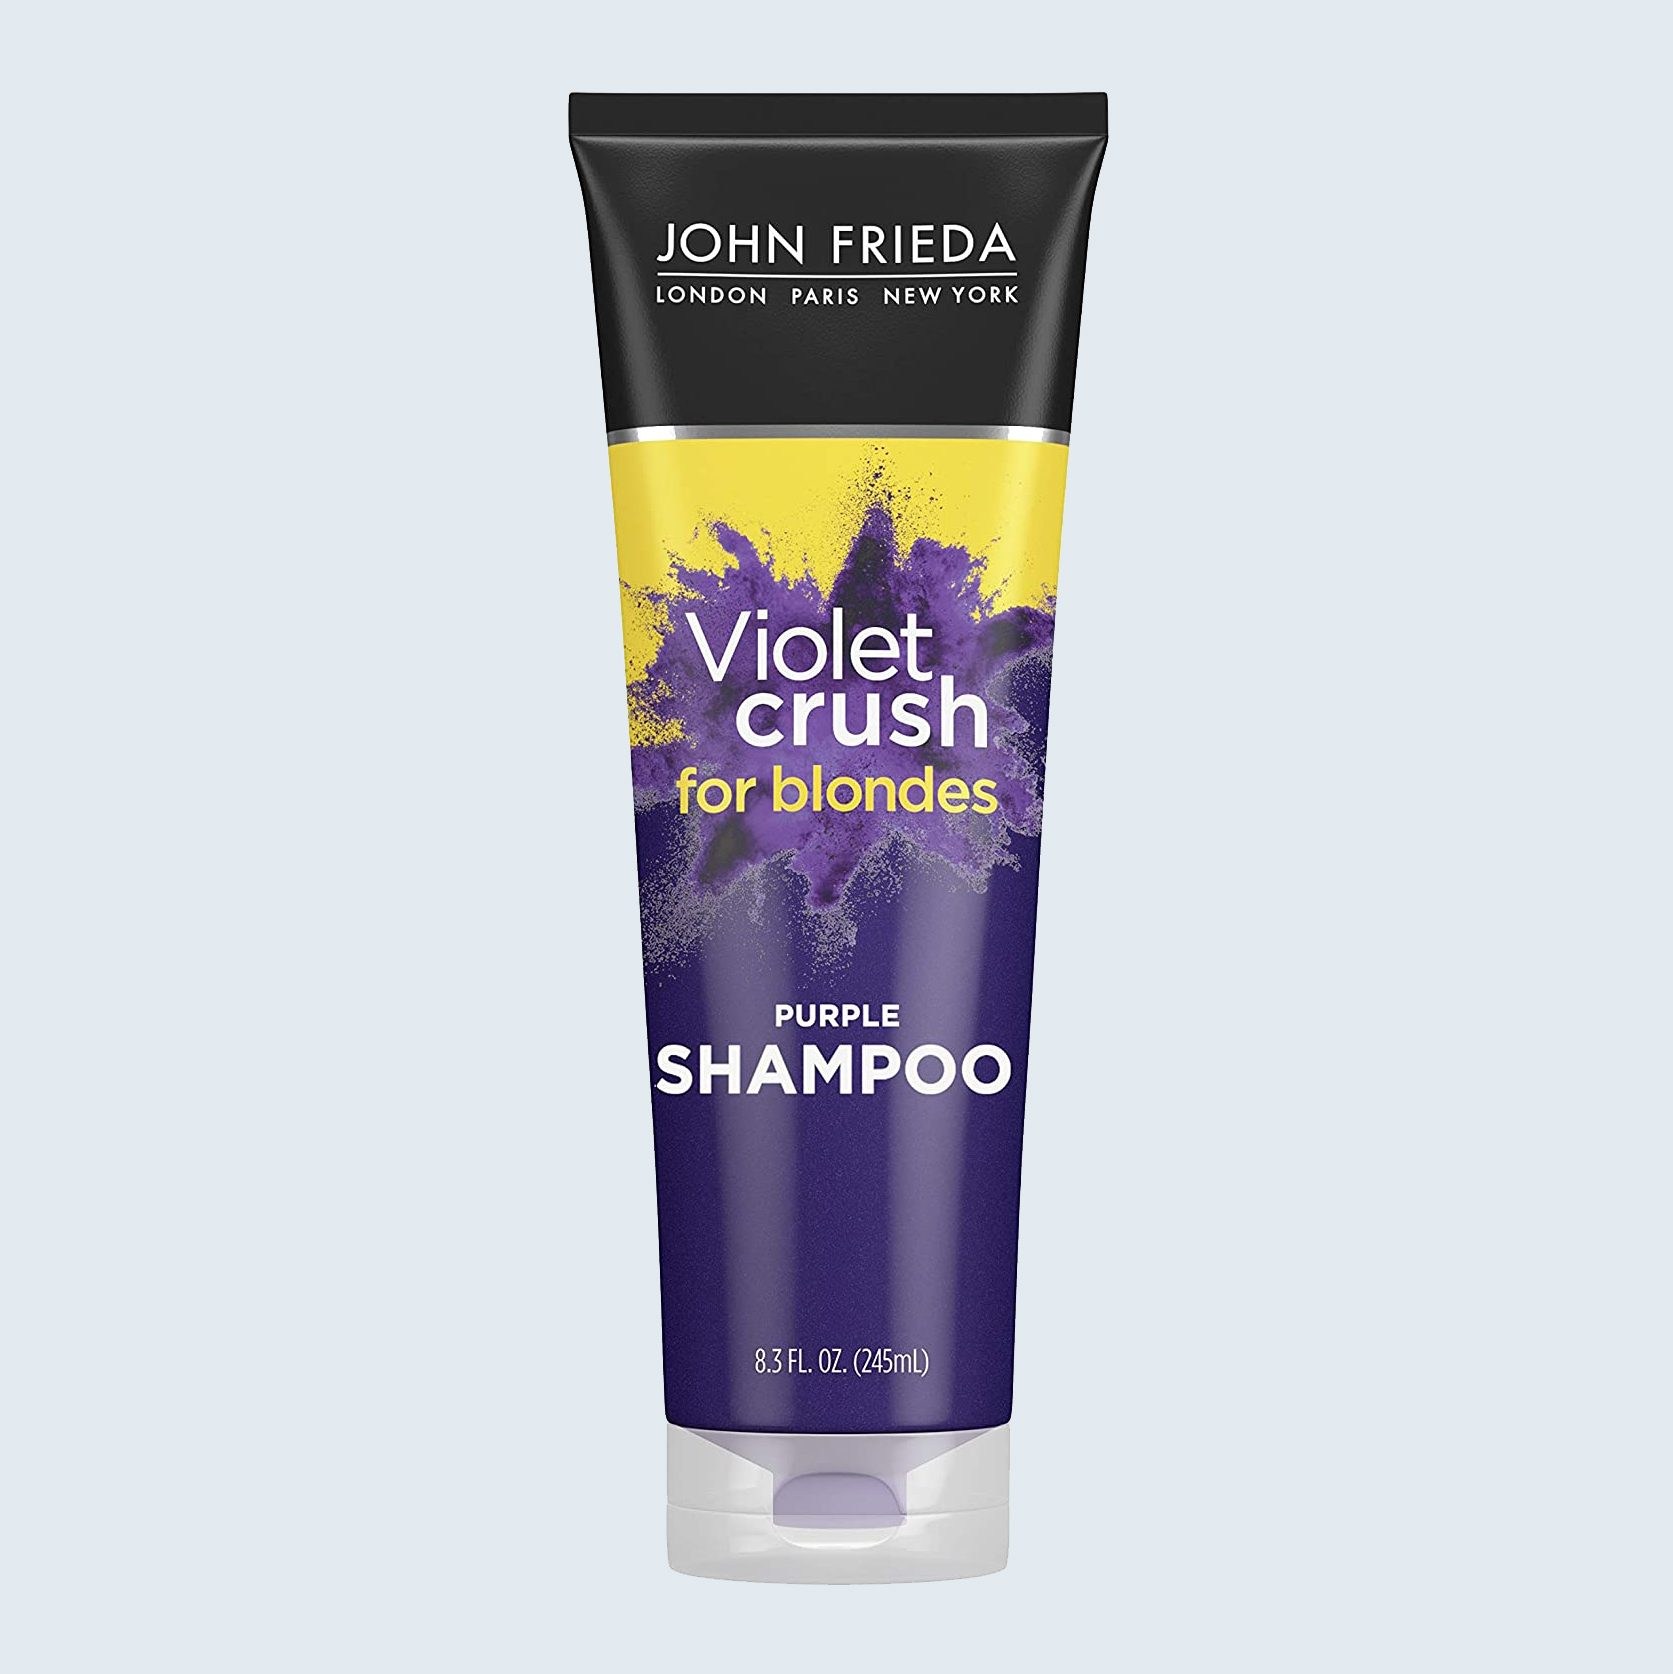 John Frieda Violet Crush Purple Shampoo